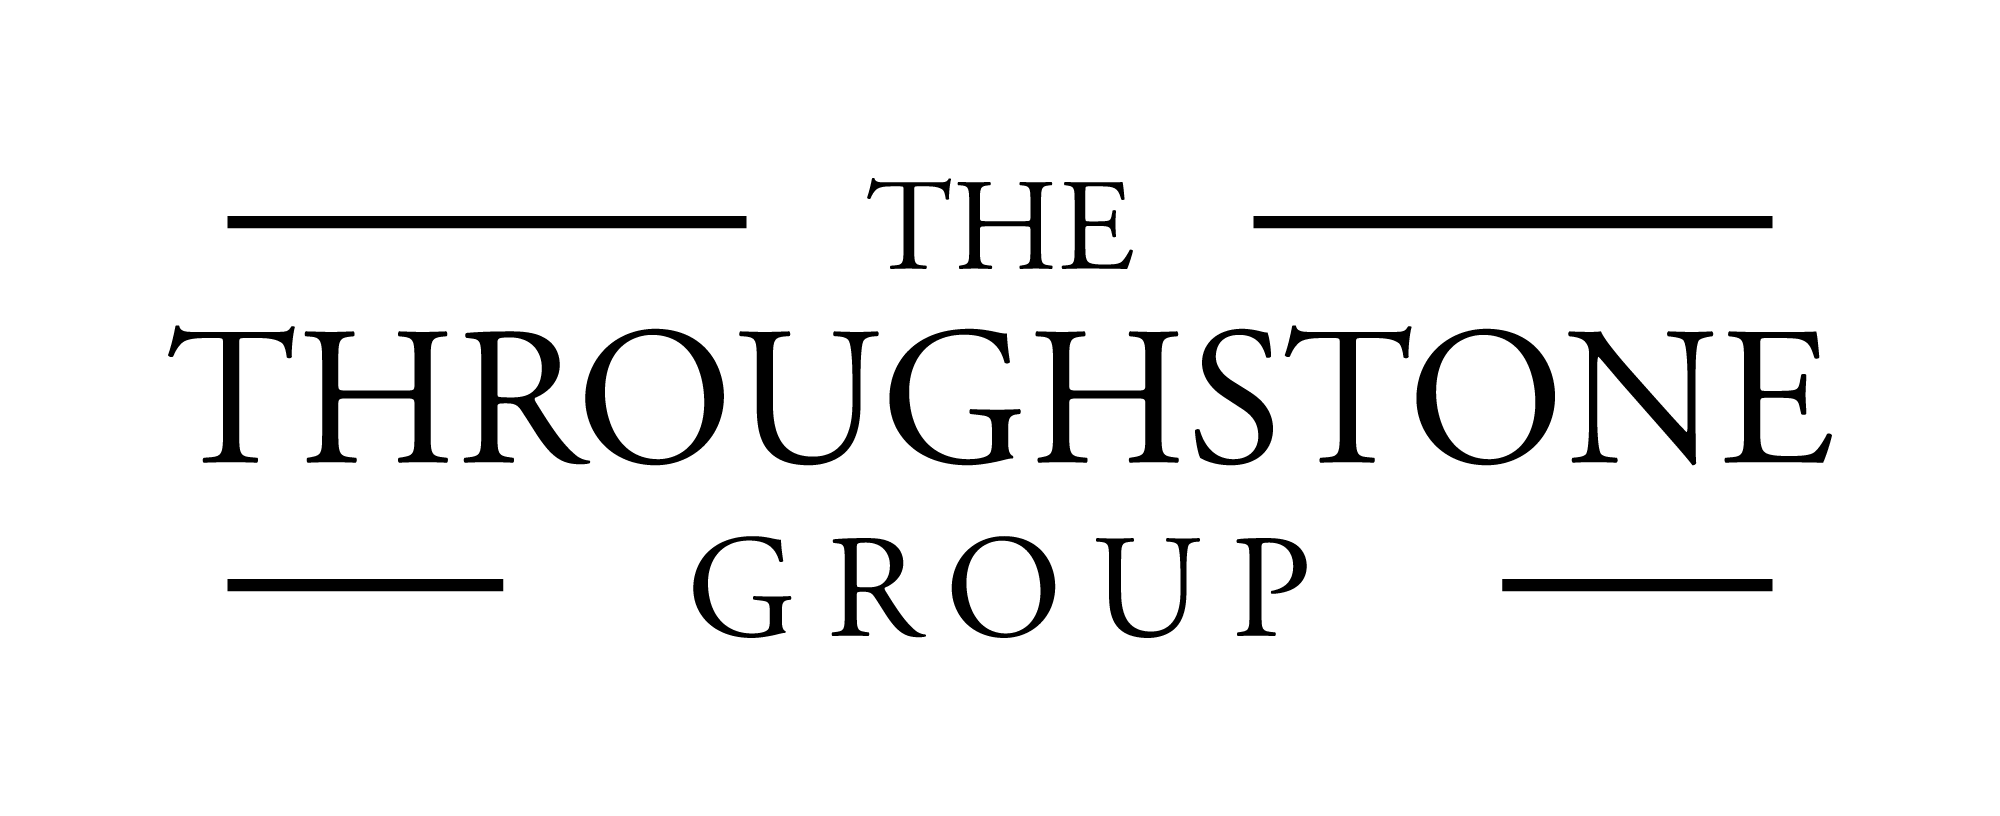 Throughstone Group